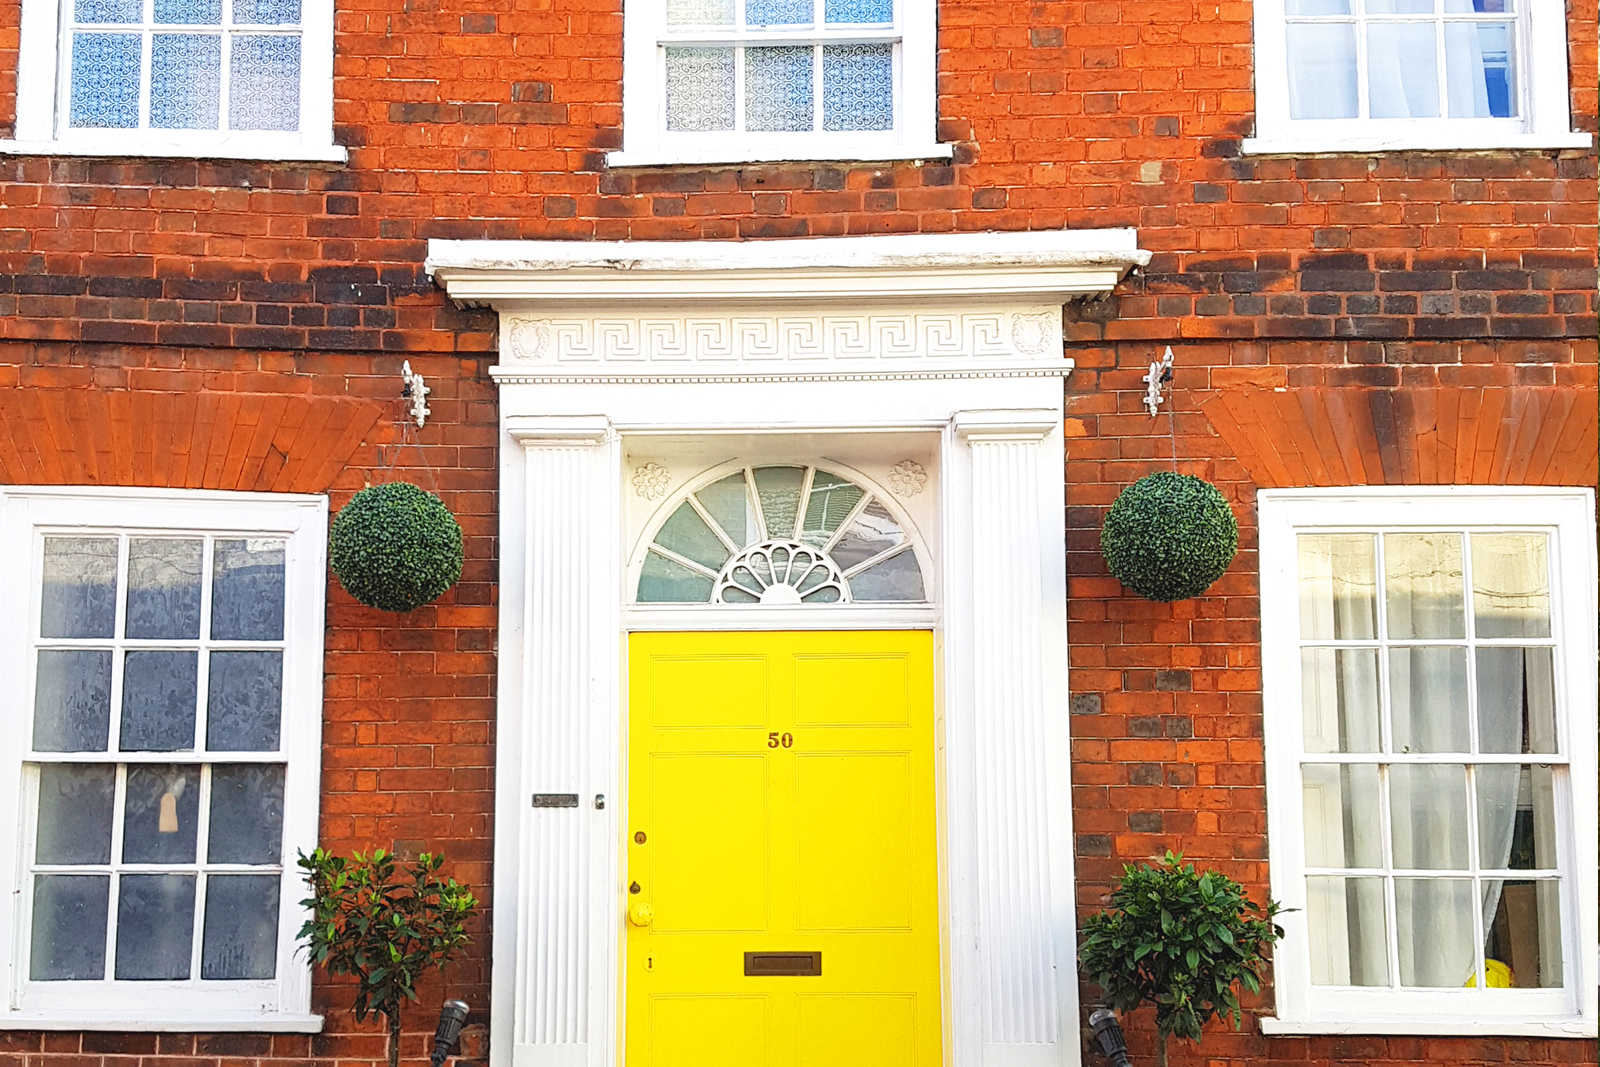 Red brick exterior with yellow front door and white trim